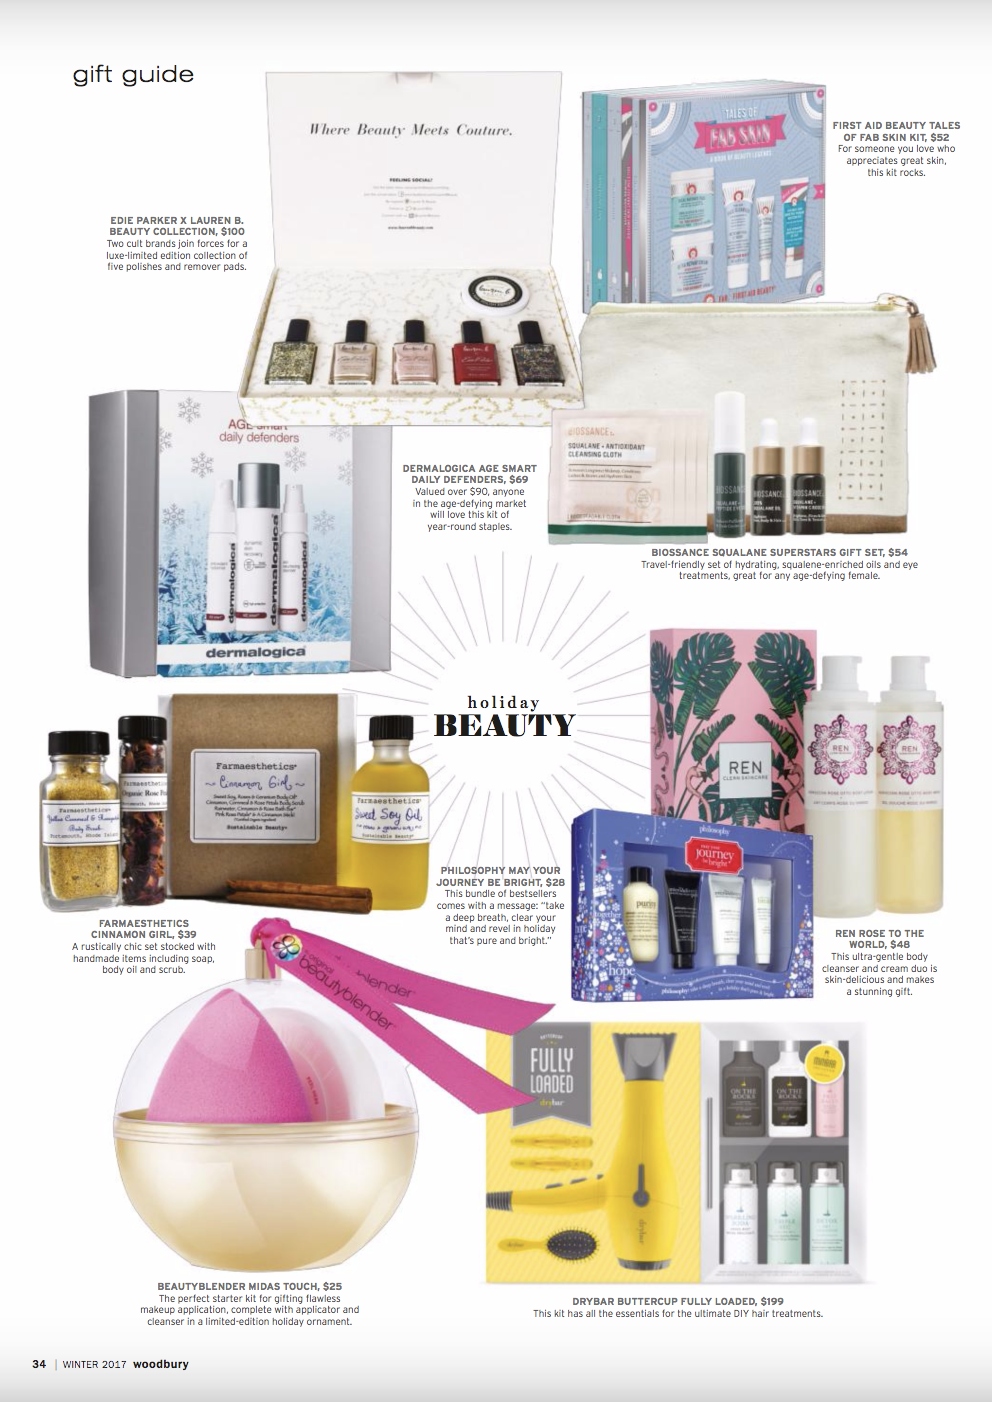 Woodbury Magazine Gift Guide Page 24 - featuring Lauren B. x Edie Parker Collection